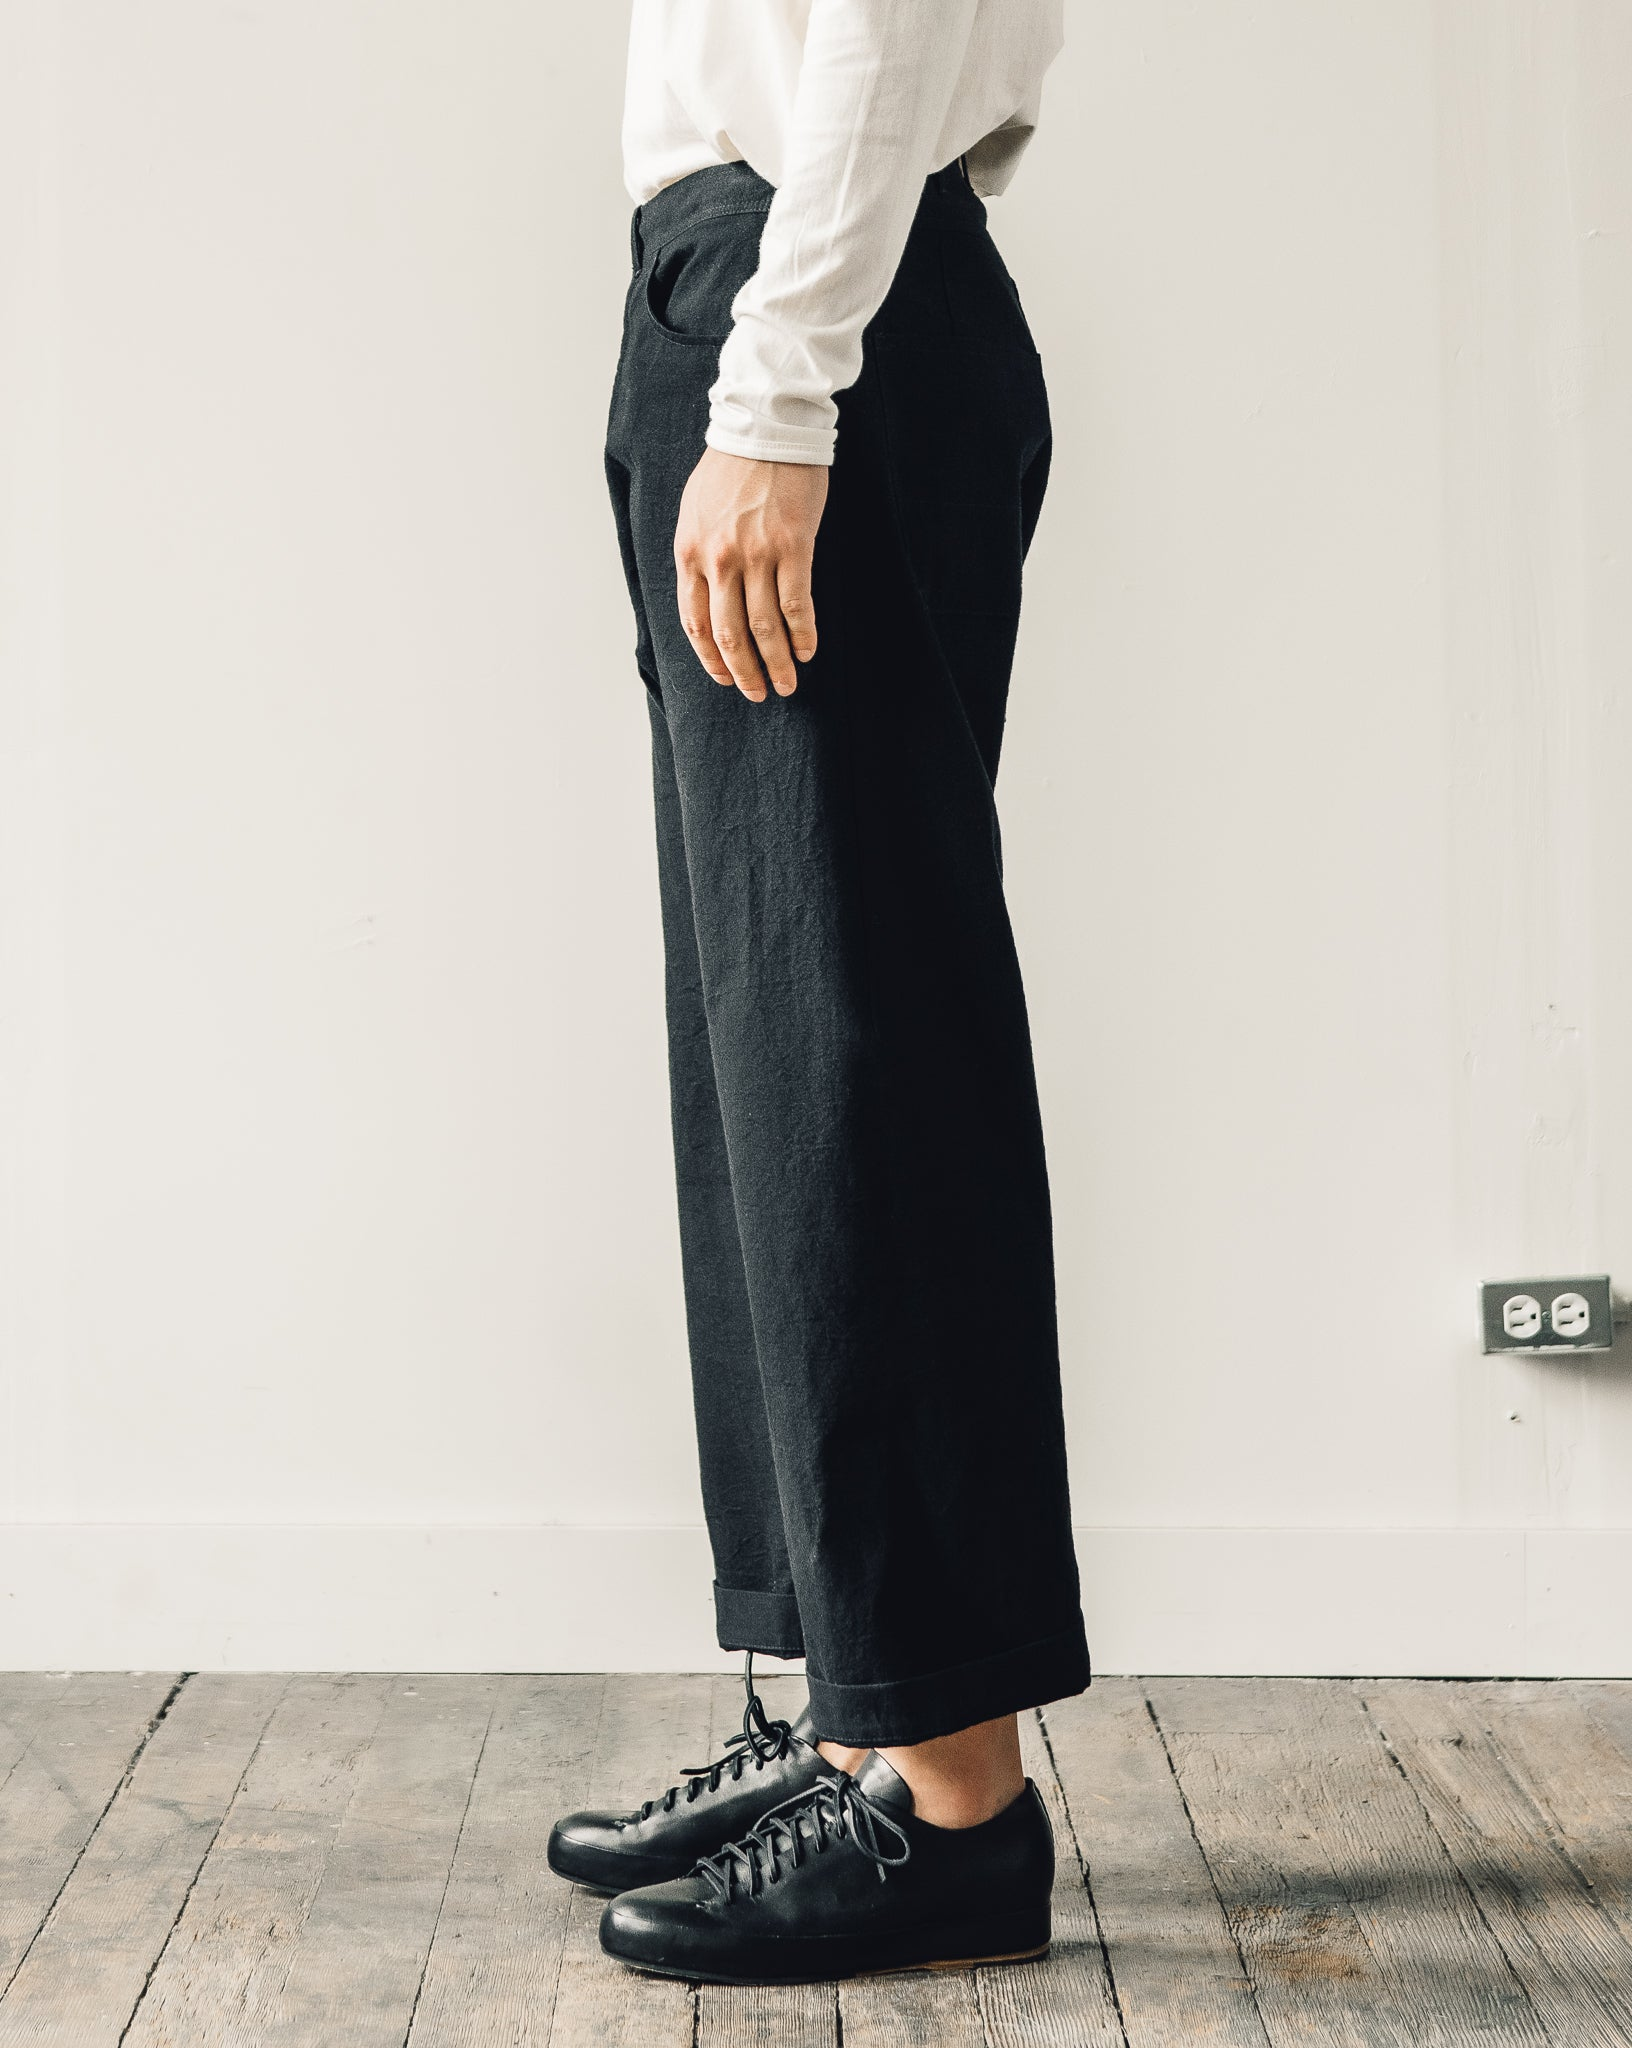 Jan-Jan Van Essche Trousers #53, Black Melange Cotton/Wool Canvas